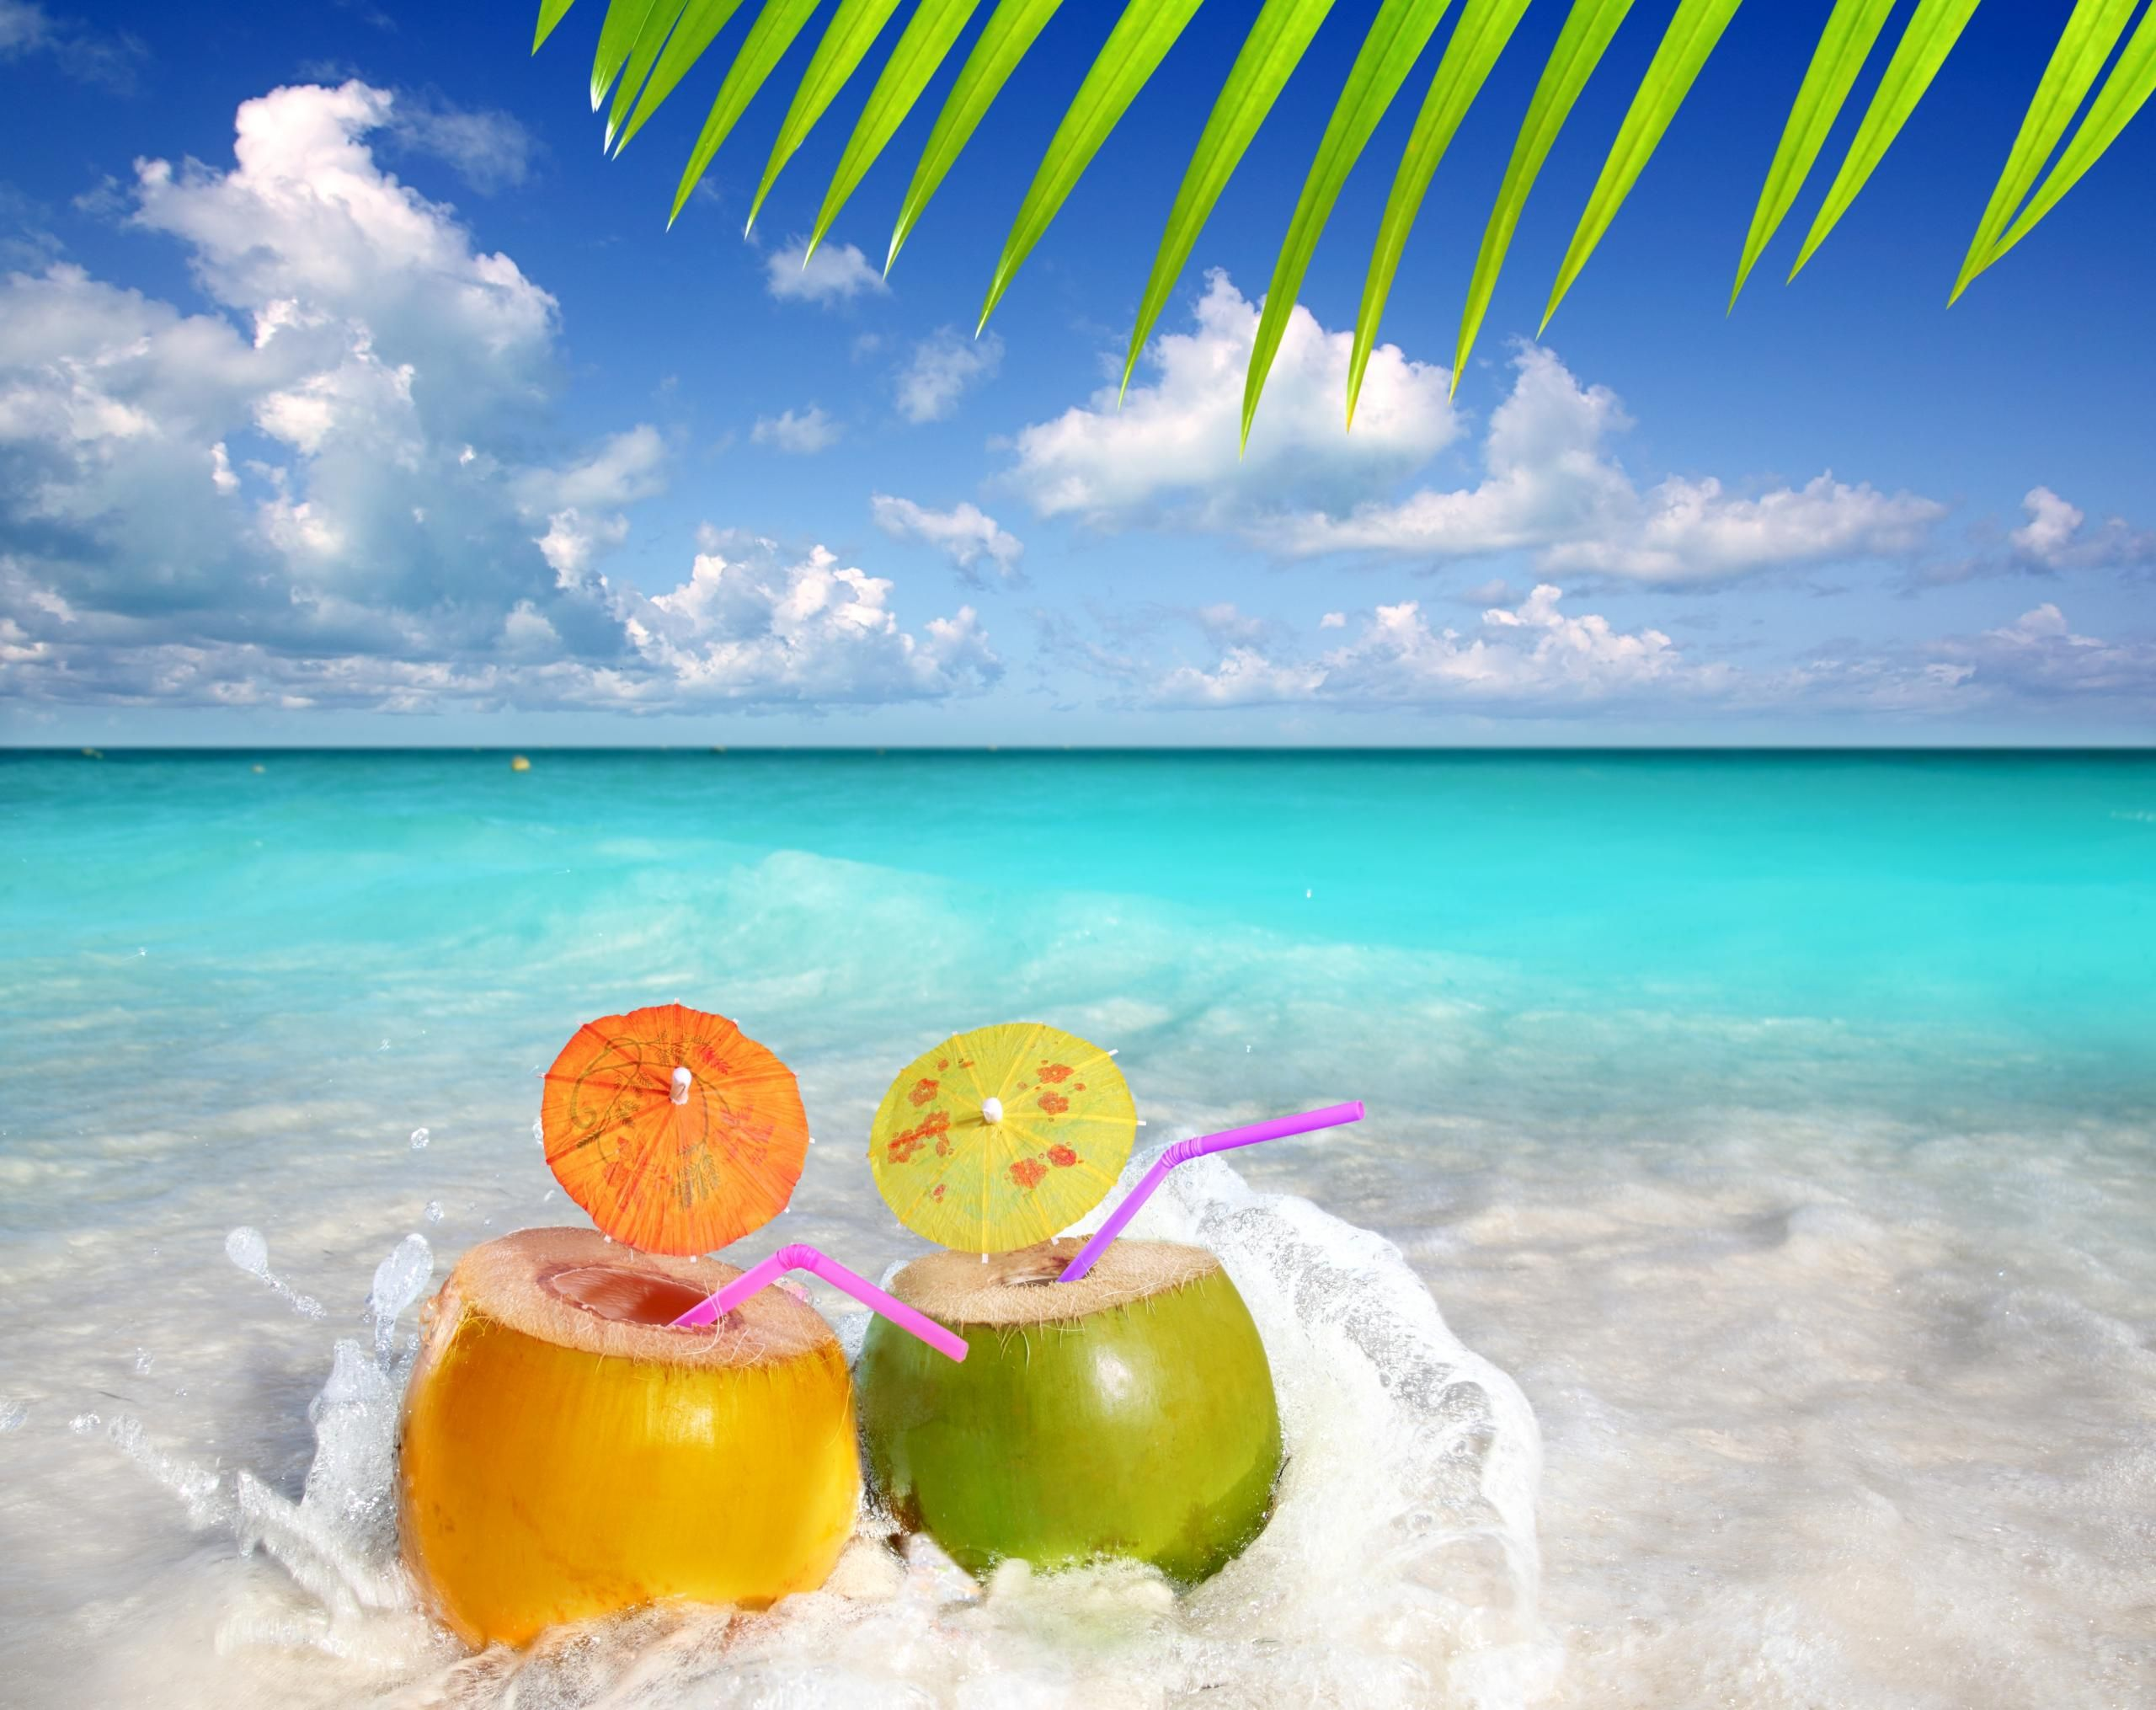 wallpapers for gt summer beach fun wallpaper summer